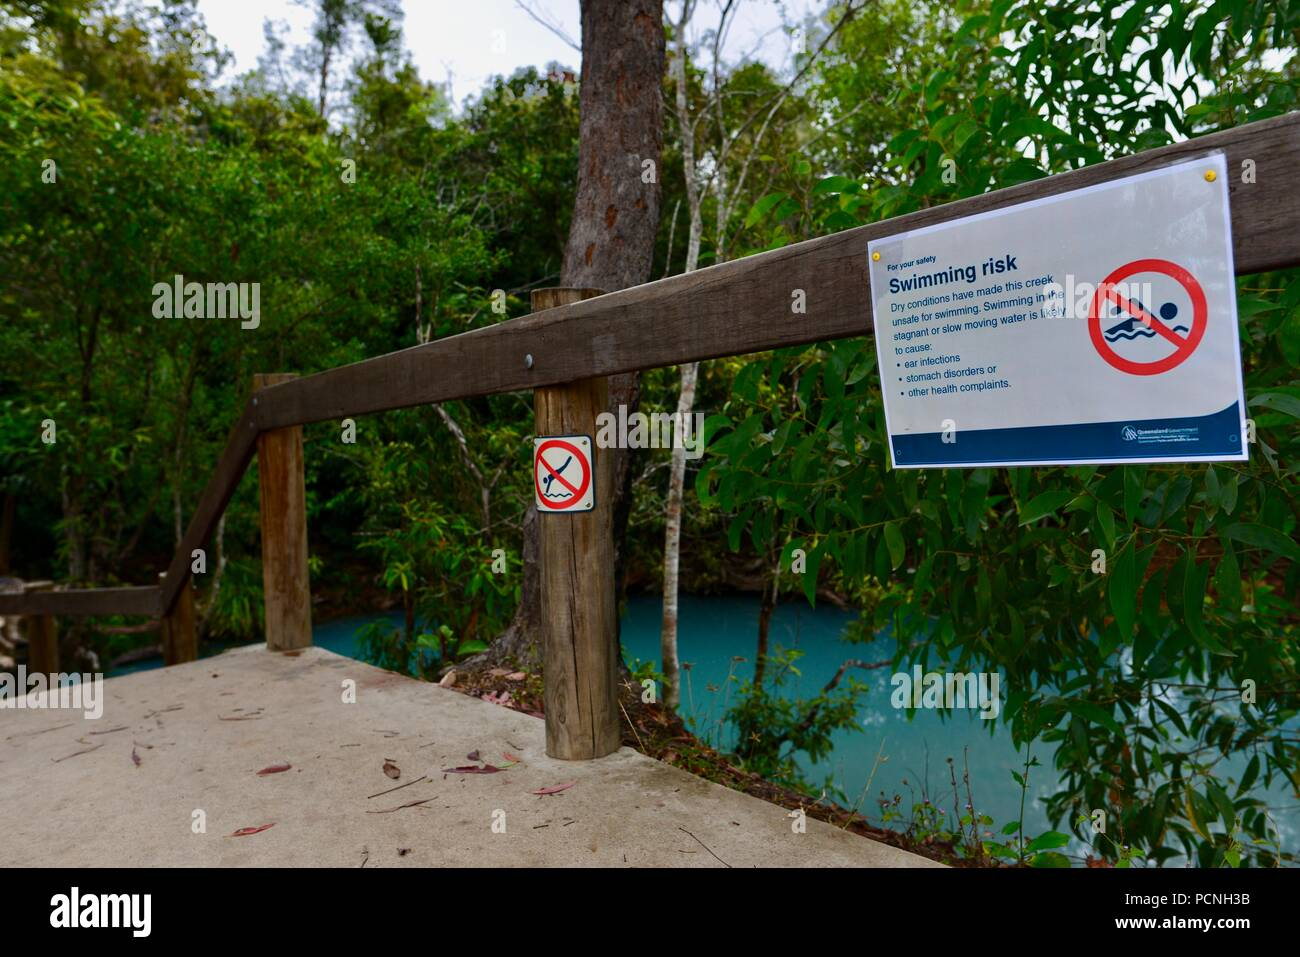 No swimming swimming risk sign, Cardwell Spa Pool, Cardwell, Queensland, Australia Stock Photo